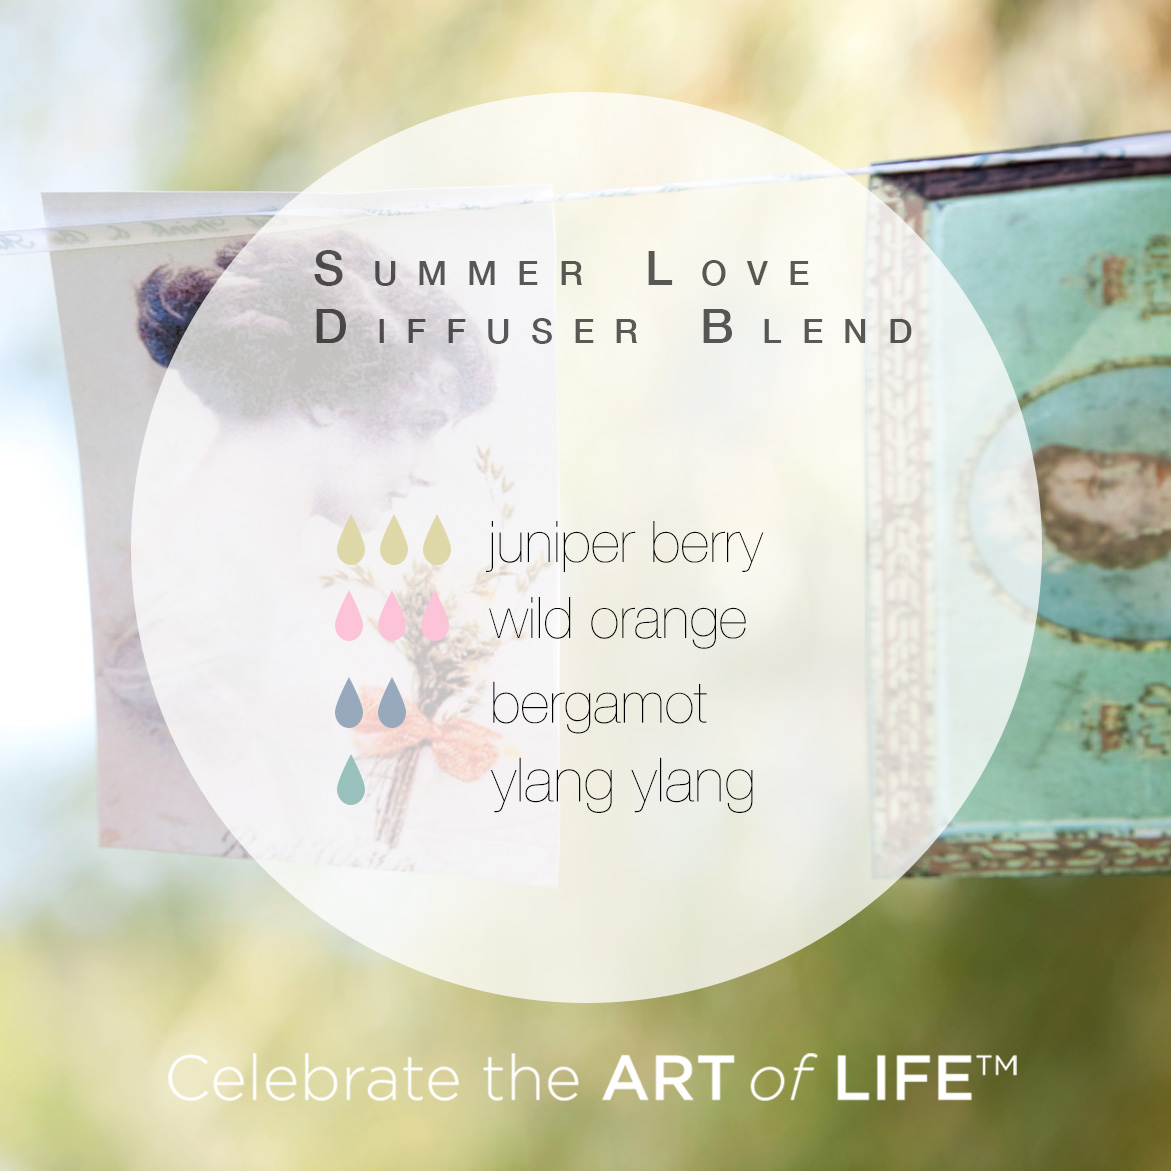 Summer Love Diffuser Blend | Celebrate the ART of LIFE